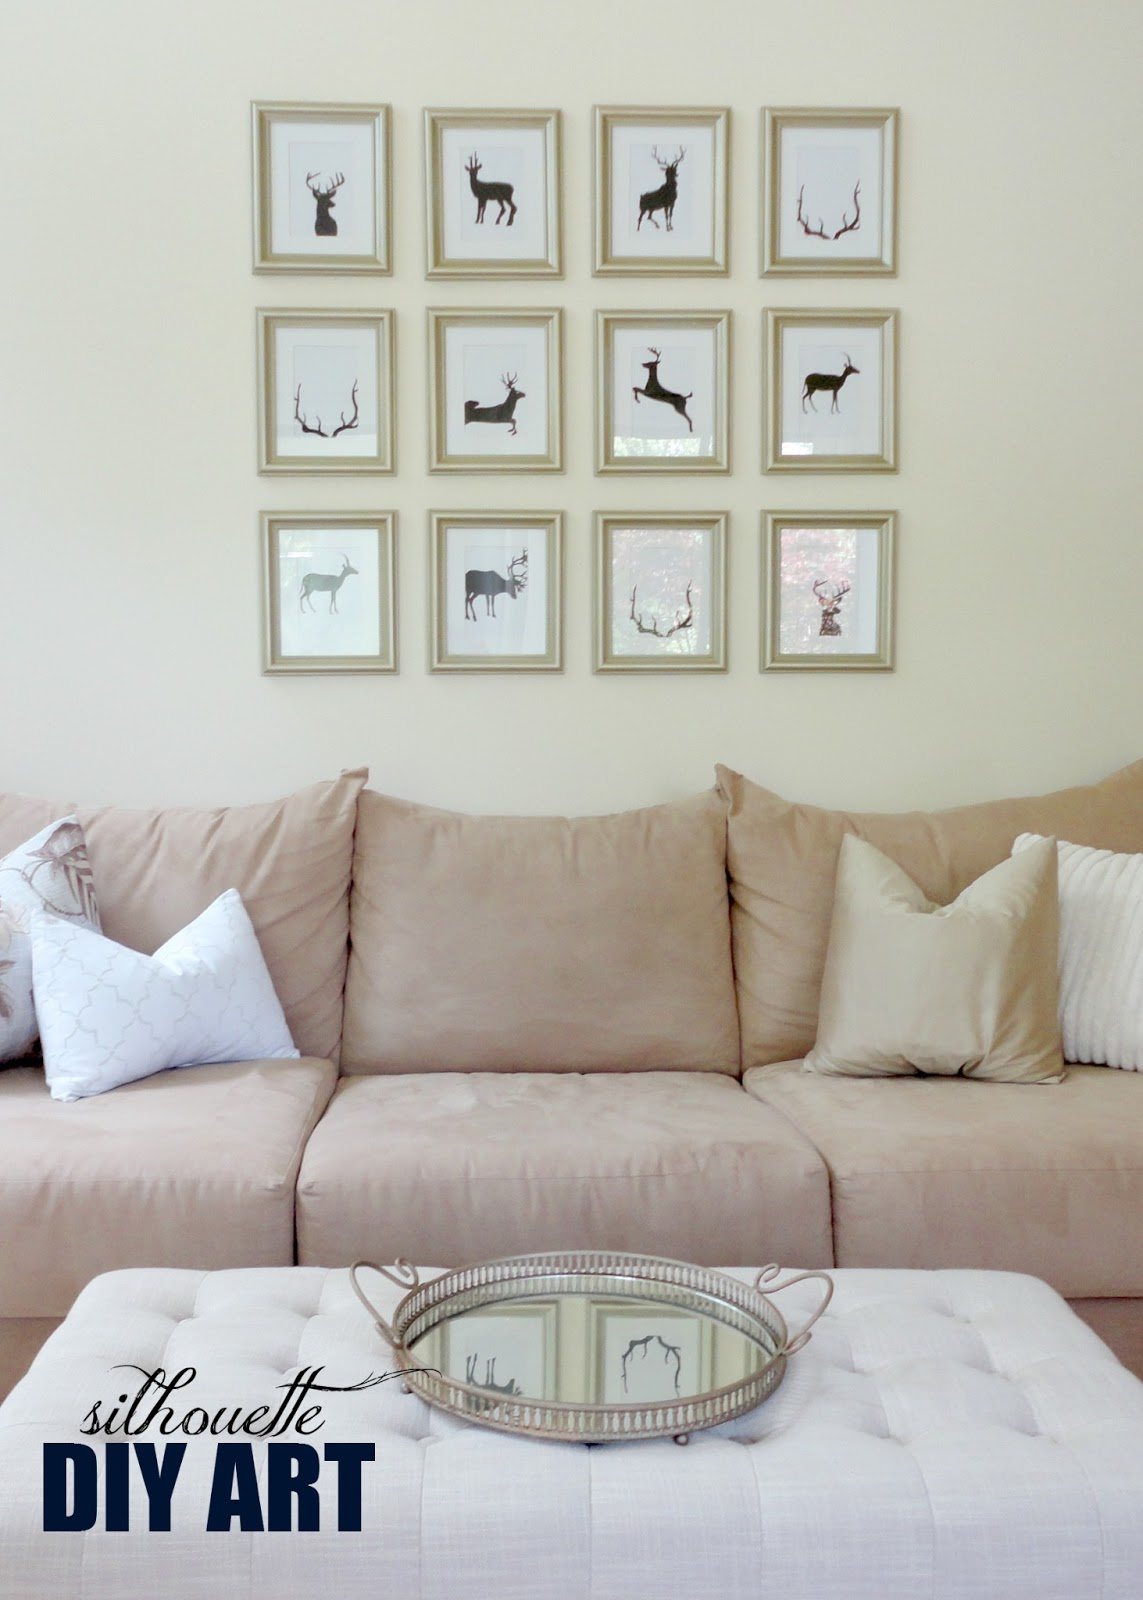 wall art ideas for living room diy. 10 DIY Art Ideas  Easy Ways to Decorate Your Walls LiveLoveDIY